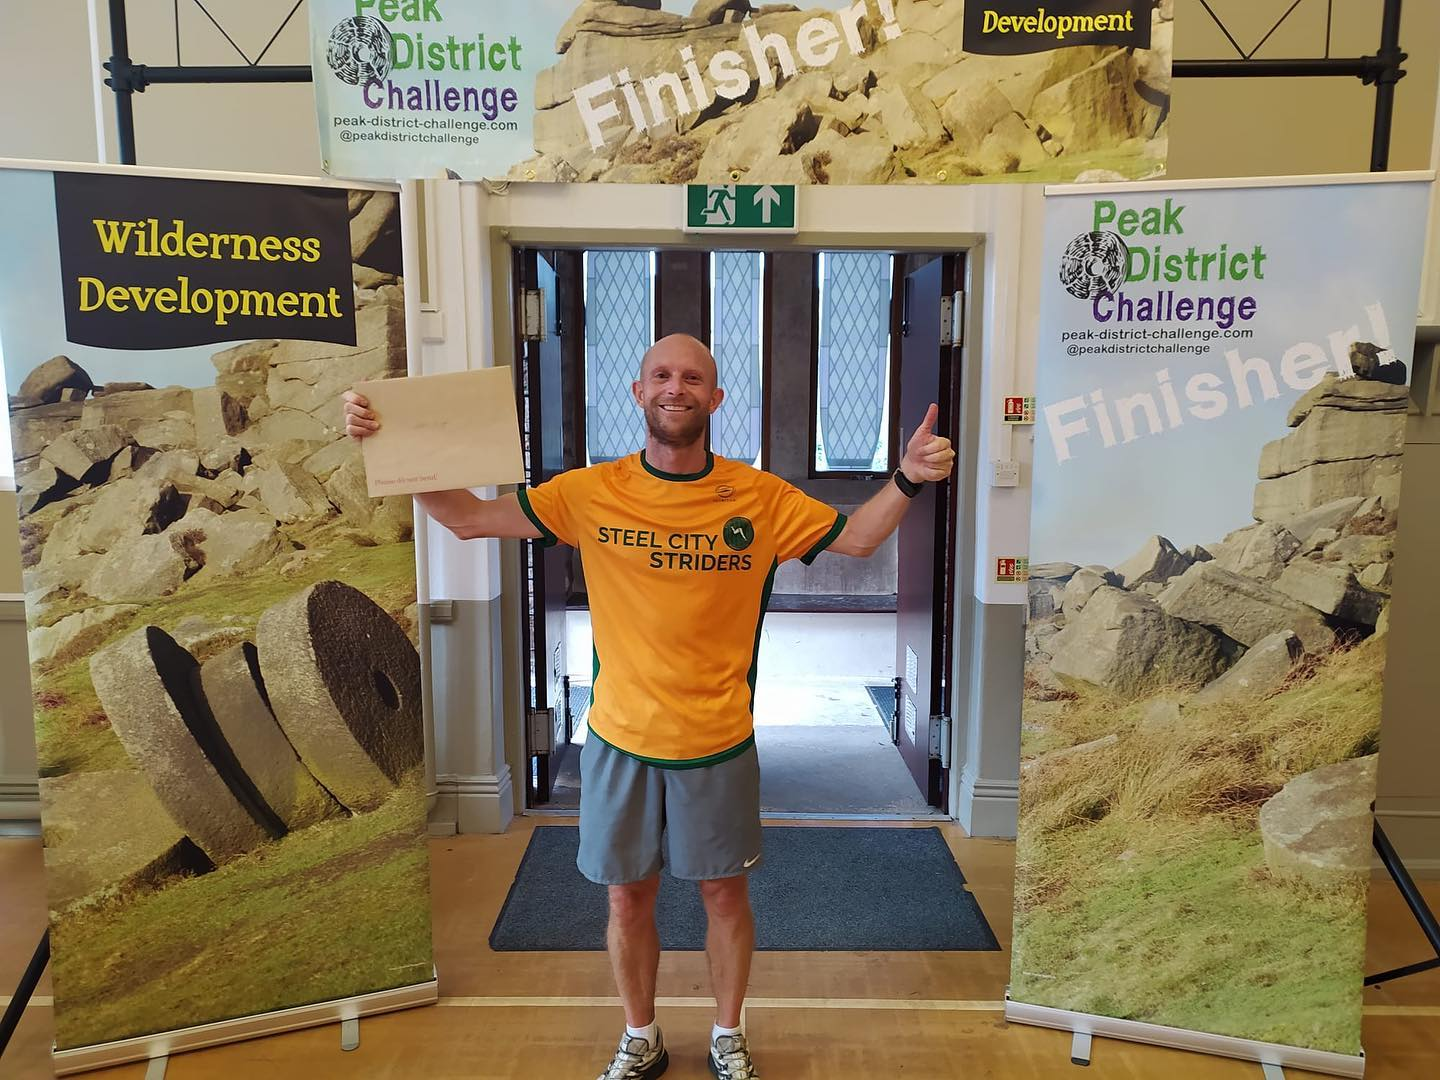 Well done to Darren Barnett for a time of 02:27:19 on the Peak District Challenge Copper, scythin...